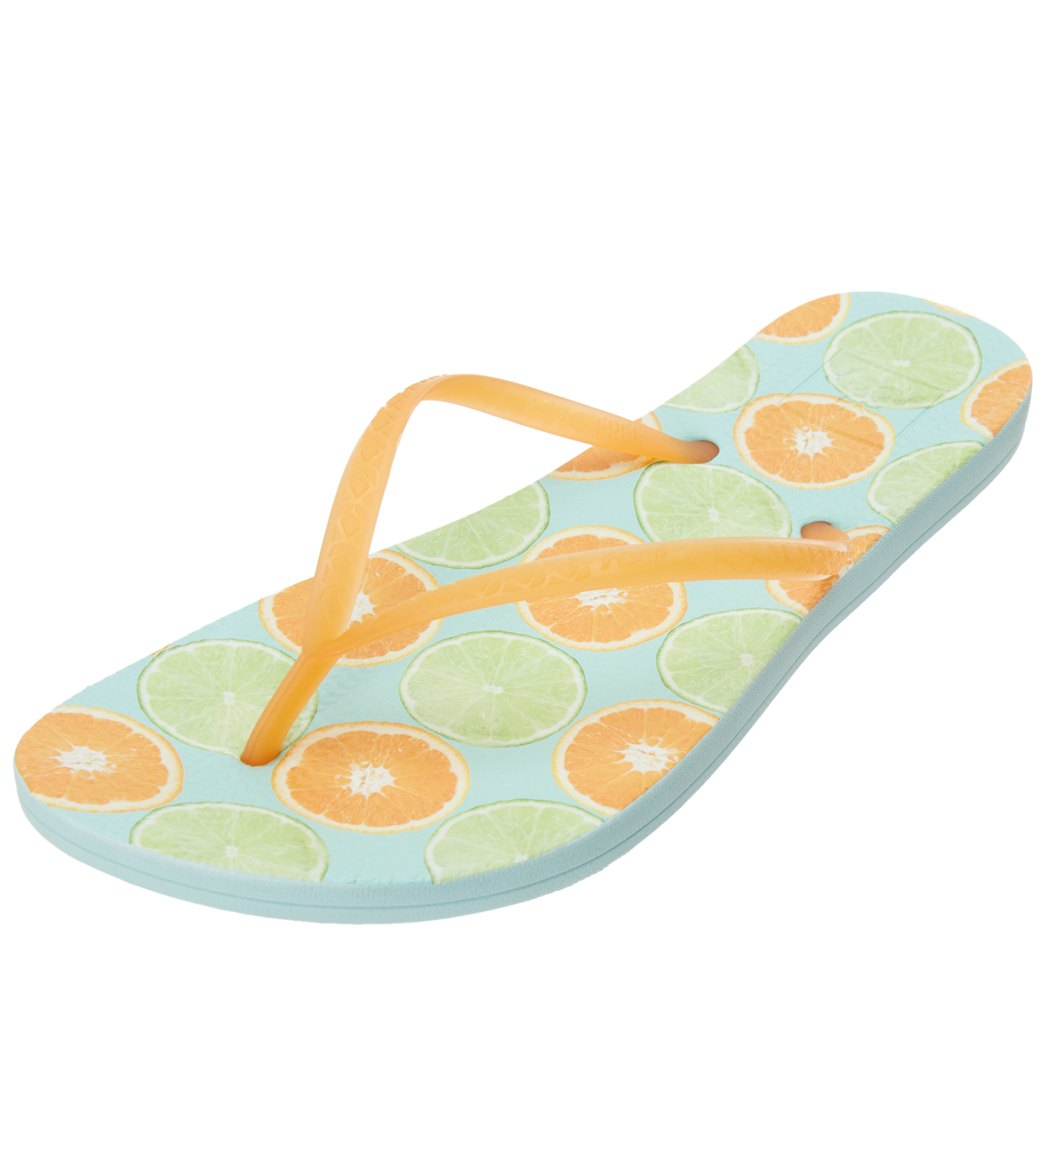 9c8a0d62b932 Reef Women s Reef Escape Lux Prints Flip Flop at SwimOutlet.com